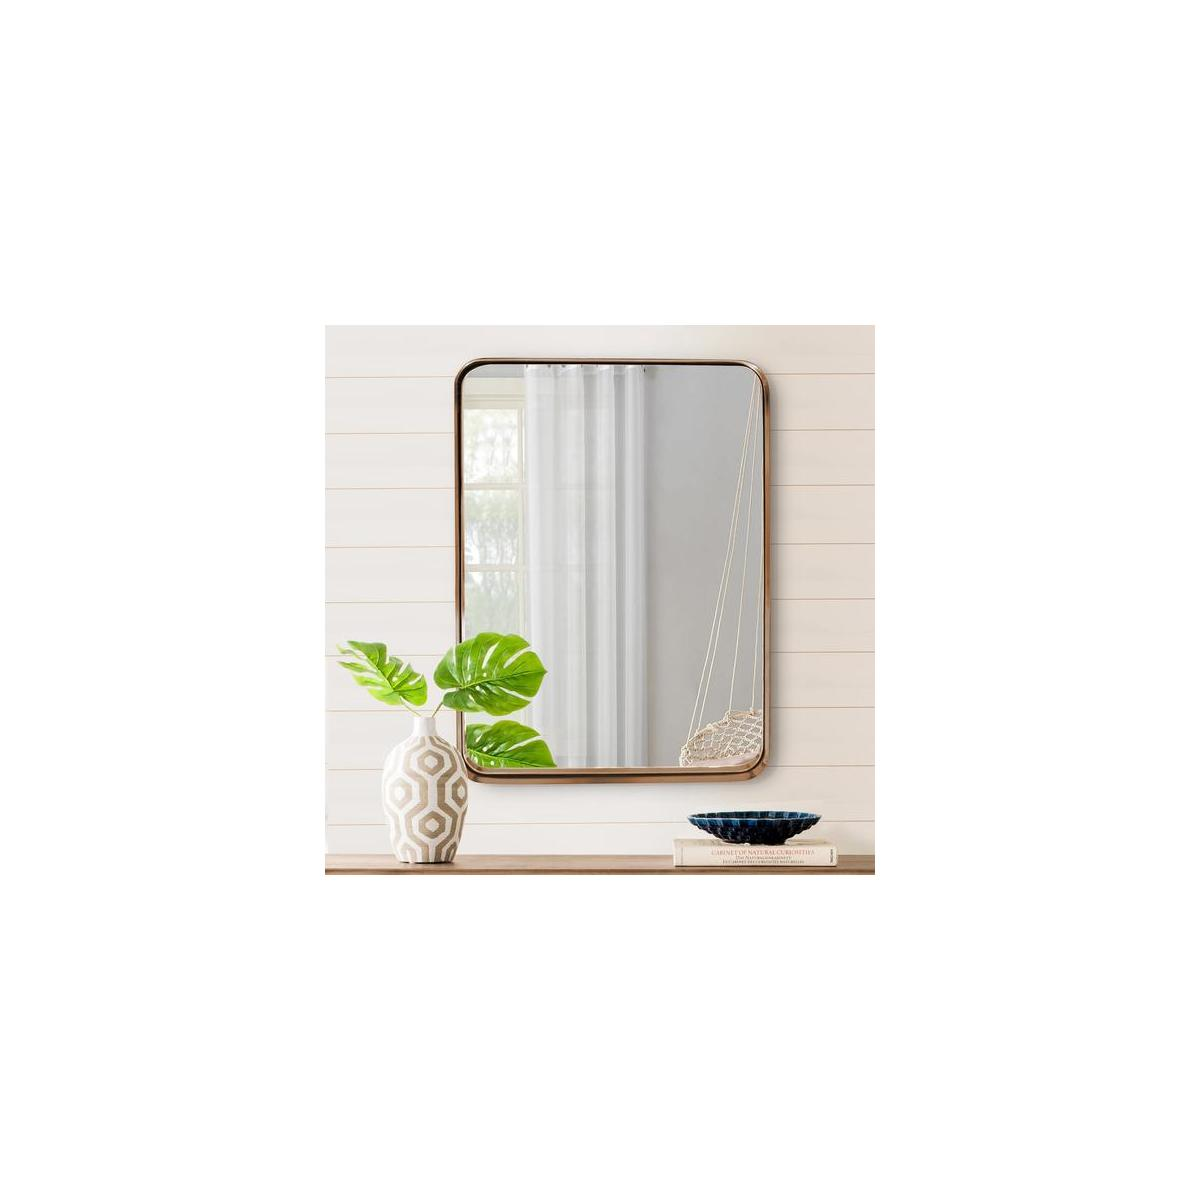 "Wallcharmers Gold Mirror, 22x30"" Brushed Brass Hangs Horizontal or Vertical Bathroom Mirrors for Vanity, Gold Vanity Mirror, Vanity Mirrors for Bathroom, Big Mirrors, Infinity Mirror"